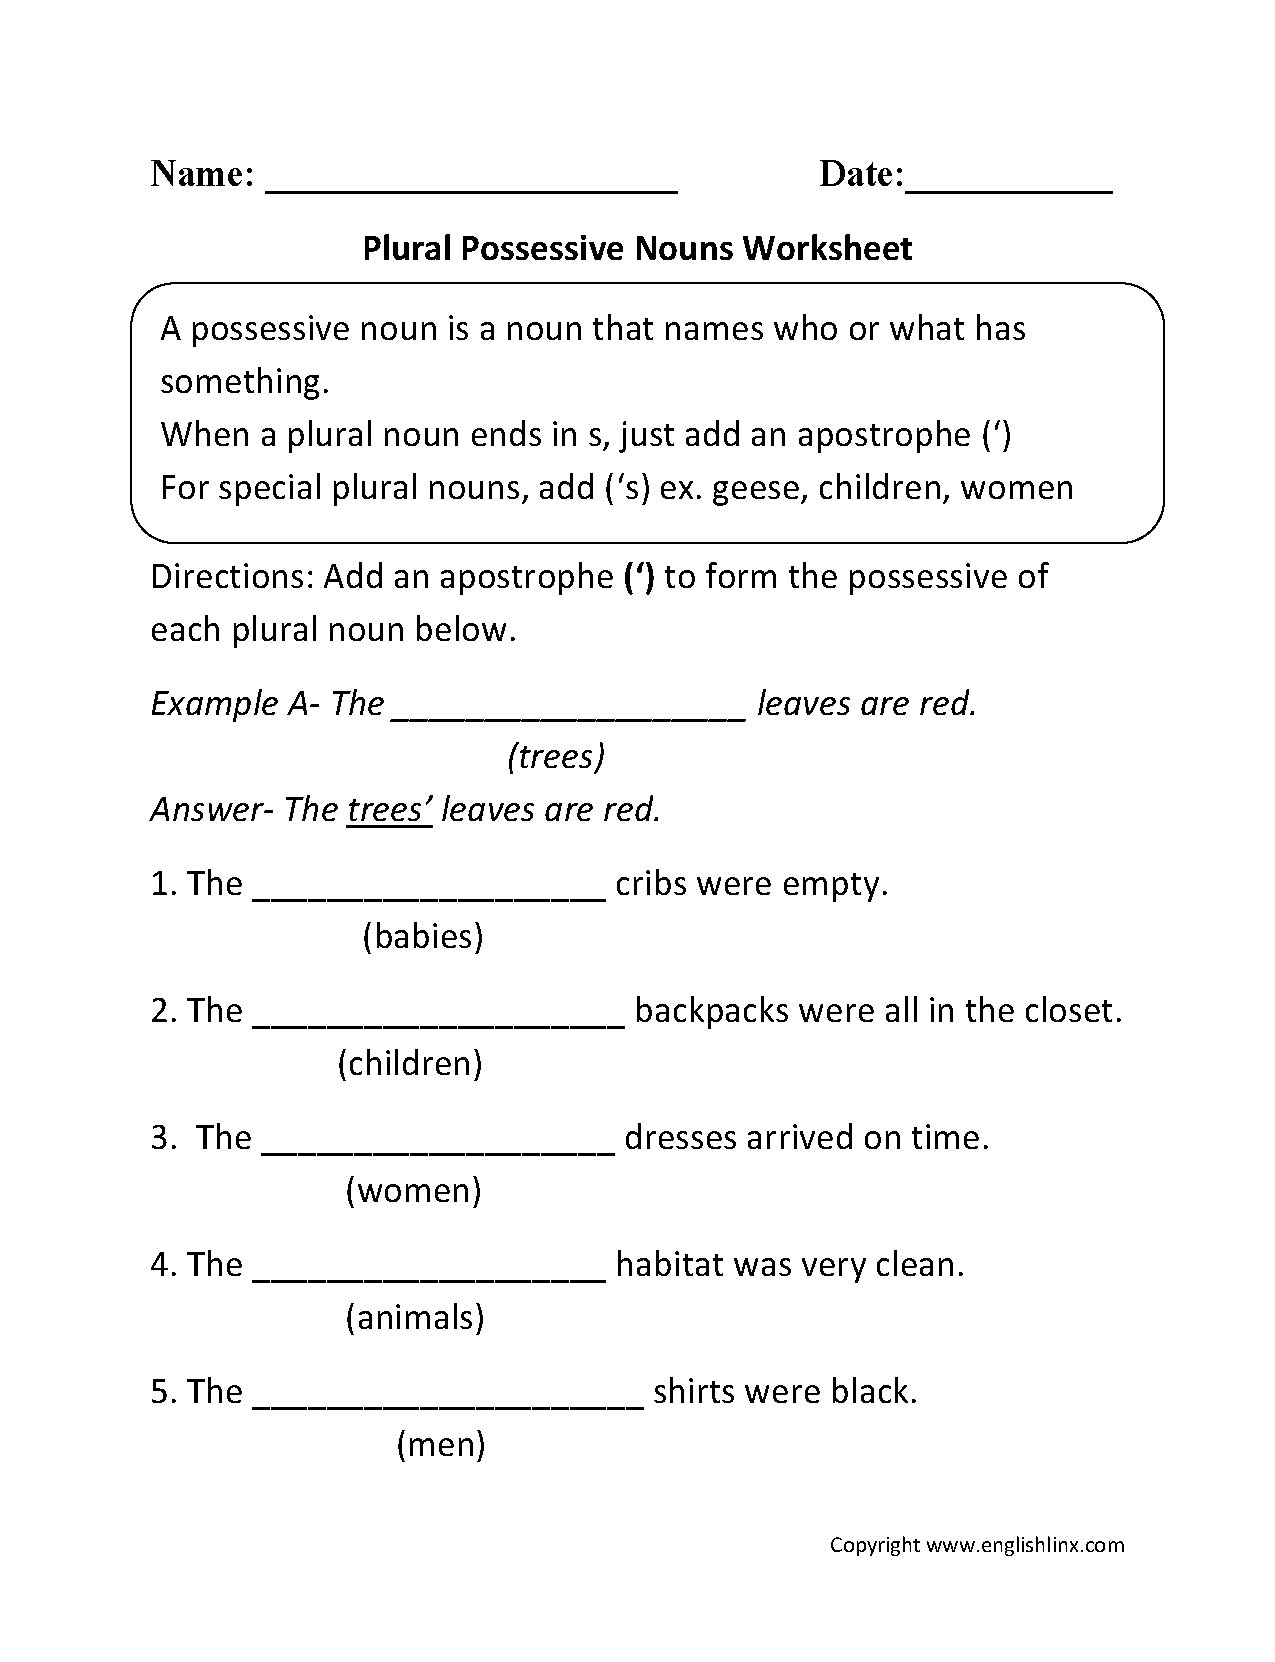 Aldiablosus  Seductive Nouns Worksheets  Possessive Nouns Worksheets With Marvelous Possessive Nouns Worksheets With Lovely Division With Remainder Worksheets Also Handwriting Letters Worksheets In Addition Worksheet Calculator And Phonemic Awareness Worksheets Kindergarten As Well As Precision Teaching Worksheets Additionally Grade  Math Worksheet From Englishlinxcom With Aldiablosus  Marvelous Nouns Worksheets  Possessive Nouns Worksheets With Lovely Possessive Nouns Worksheets And Seductive Division With Remainder Worksheets Also Handwriting Letters Worksheets In Addition Worksheet Calculator From Englishlinxcom